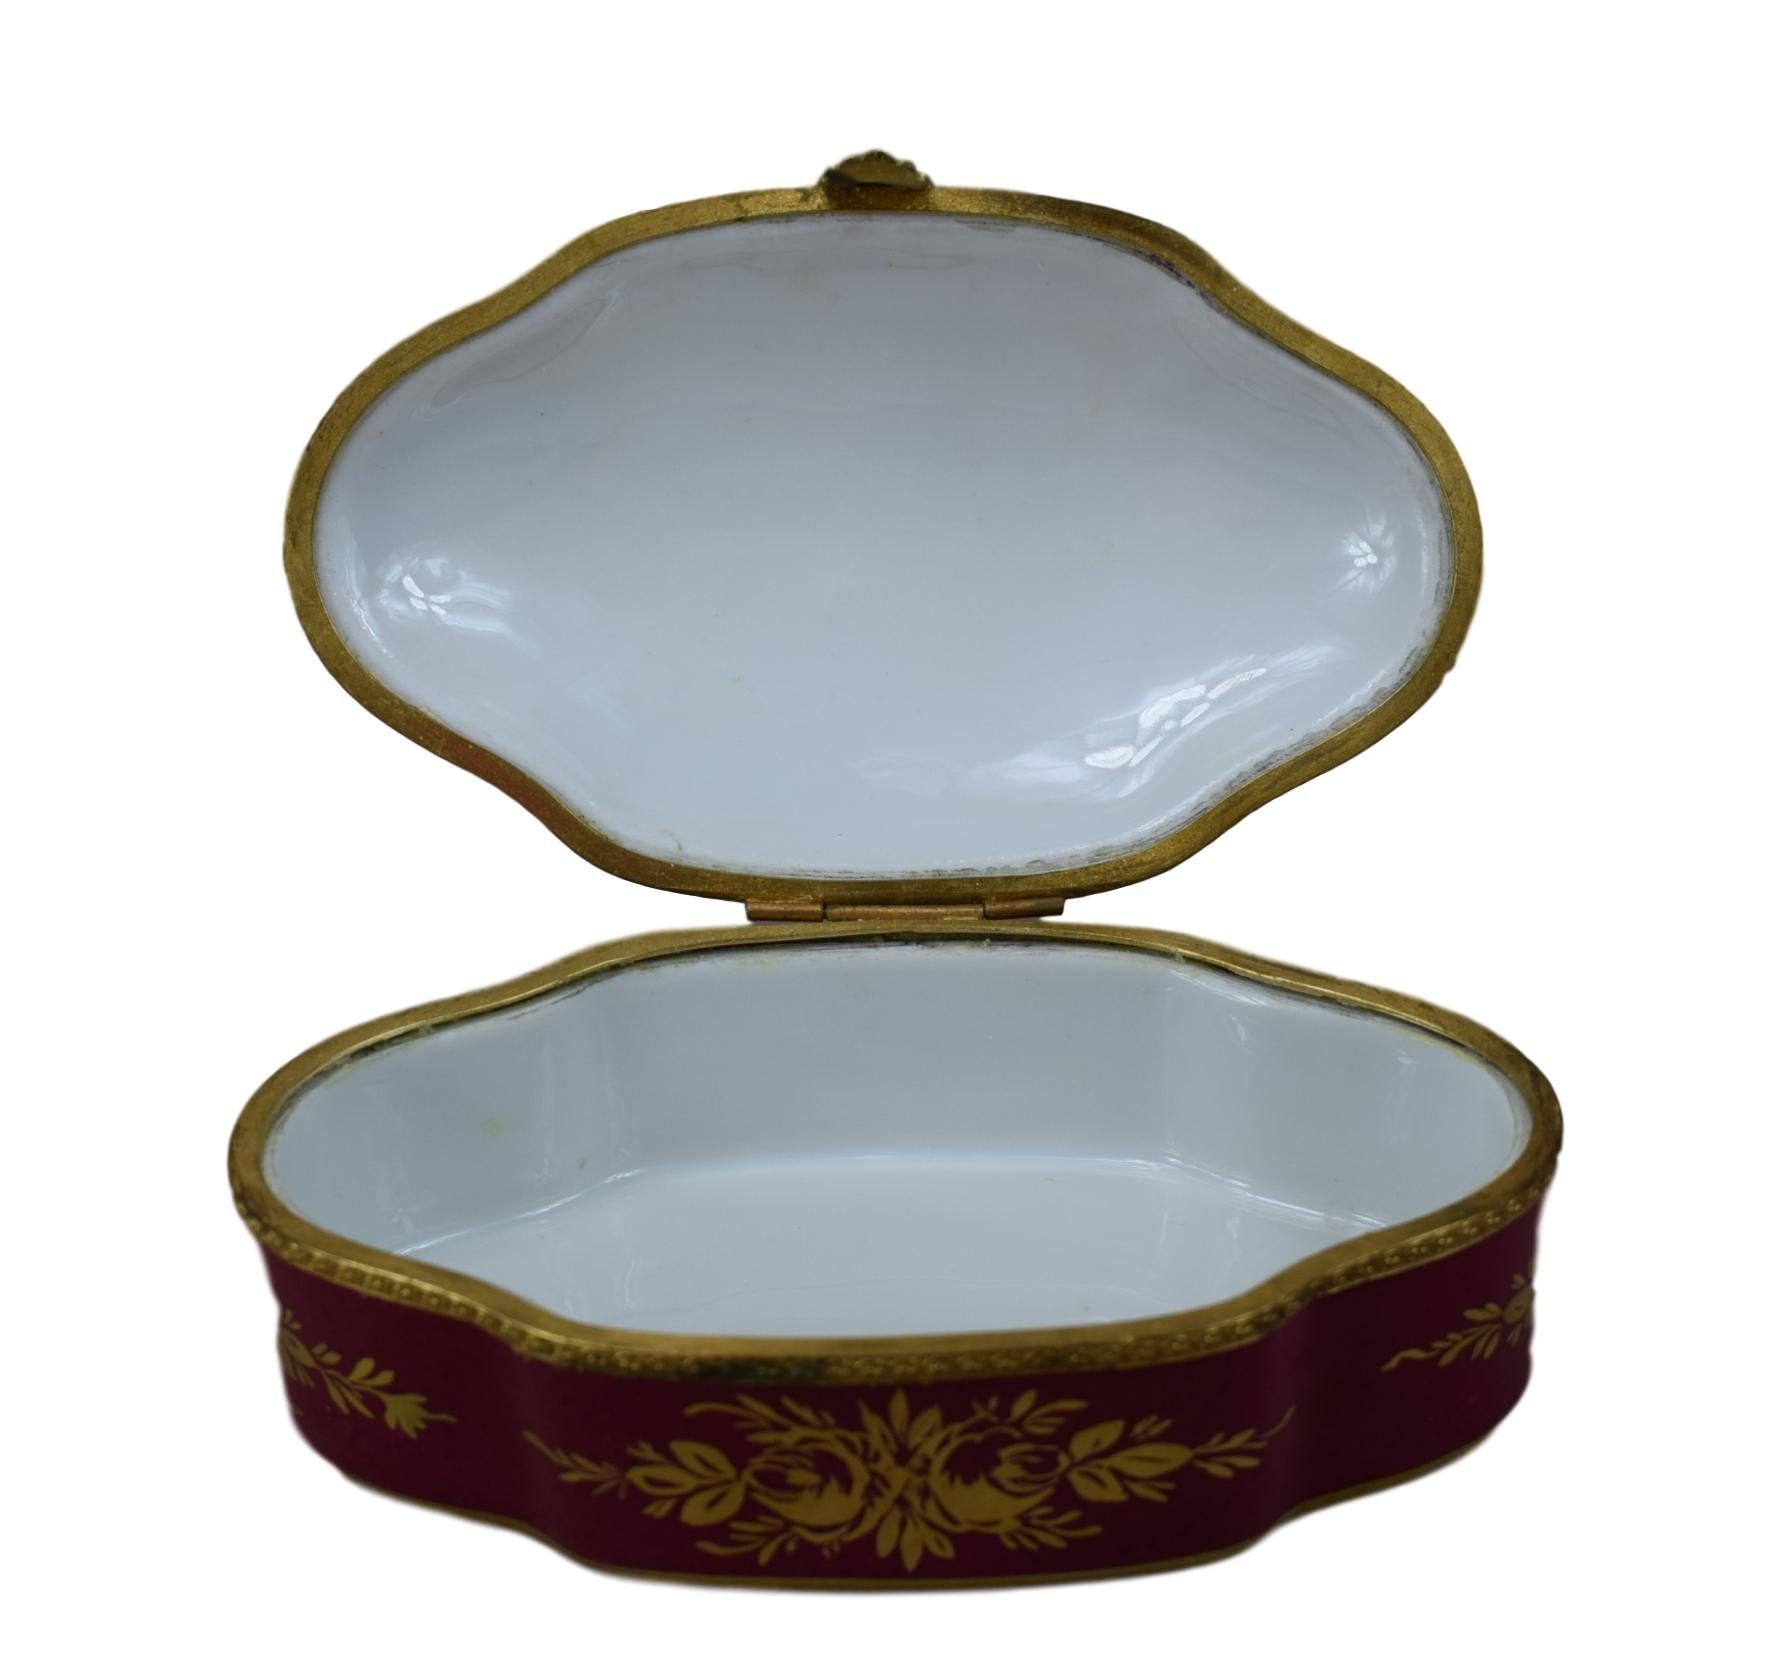 Porcelain Hinged Box - Charmantiques